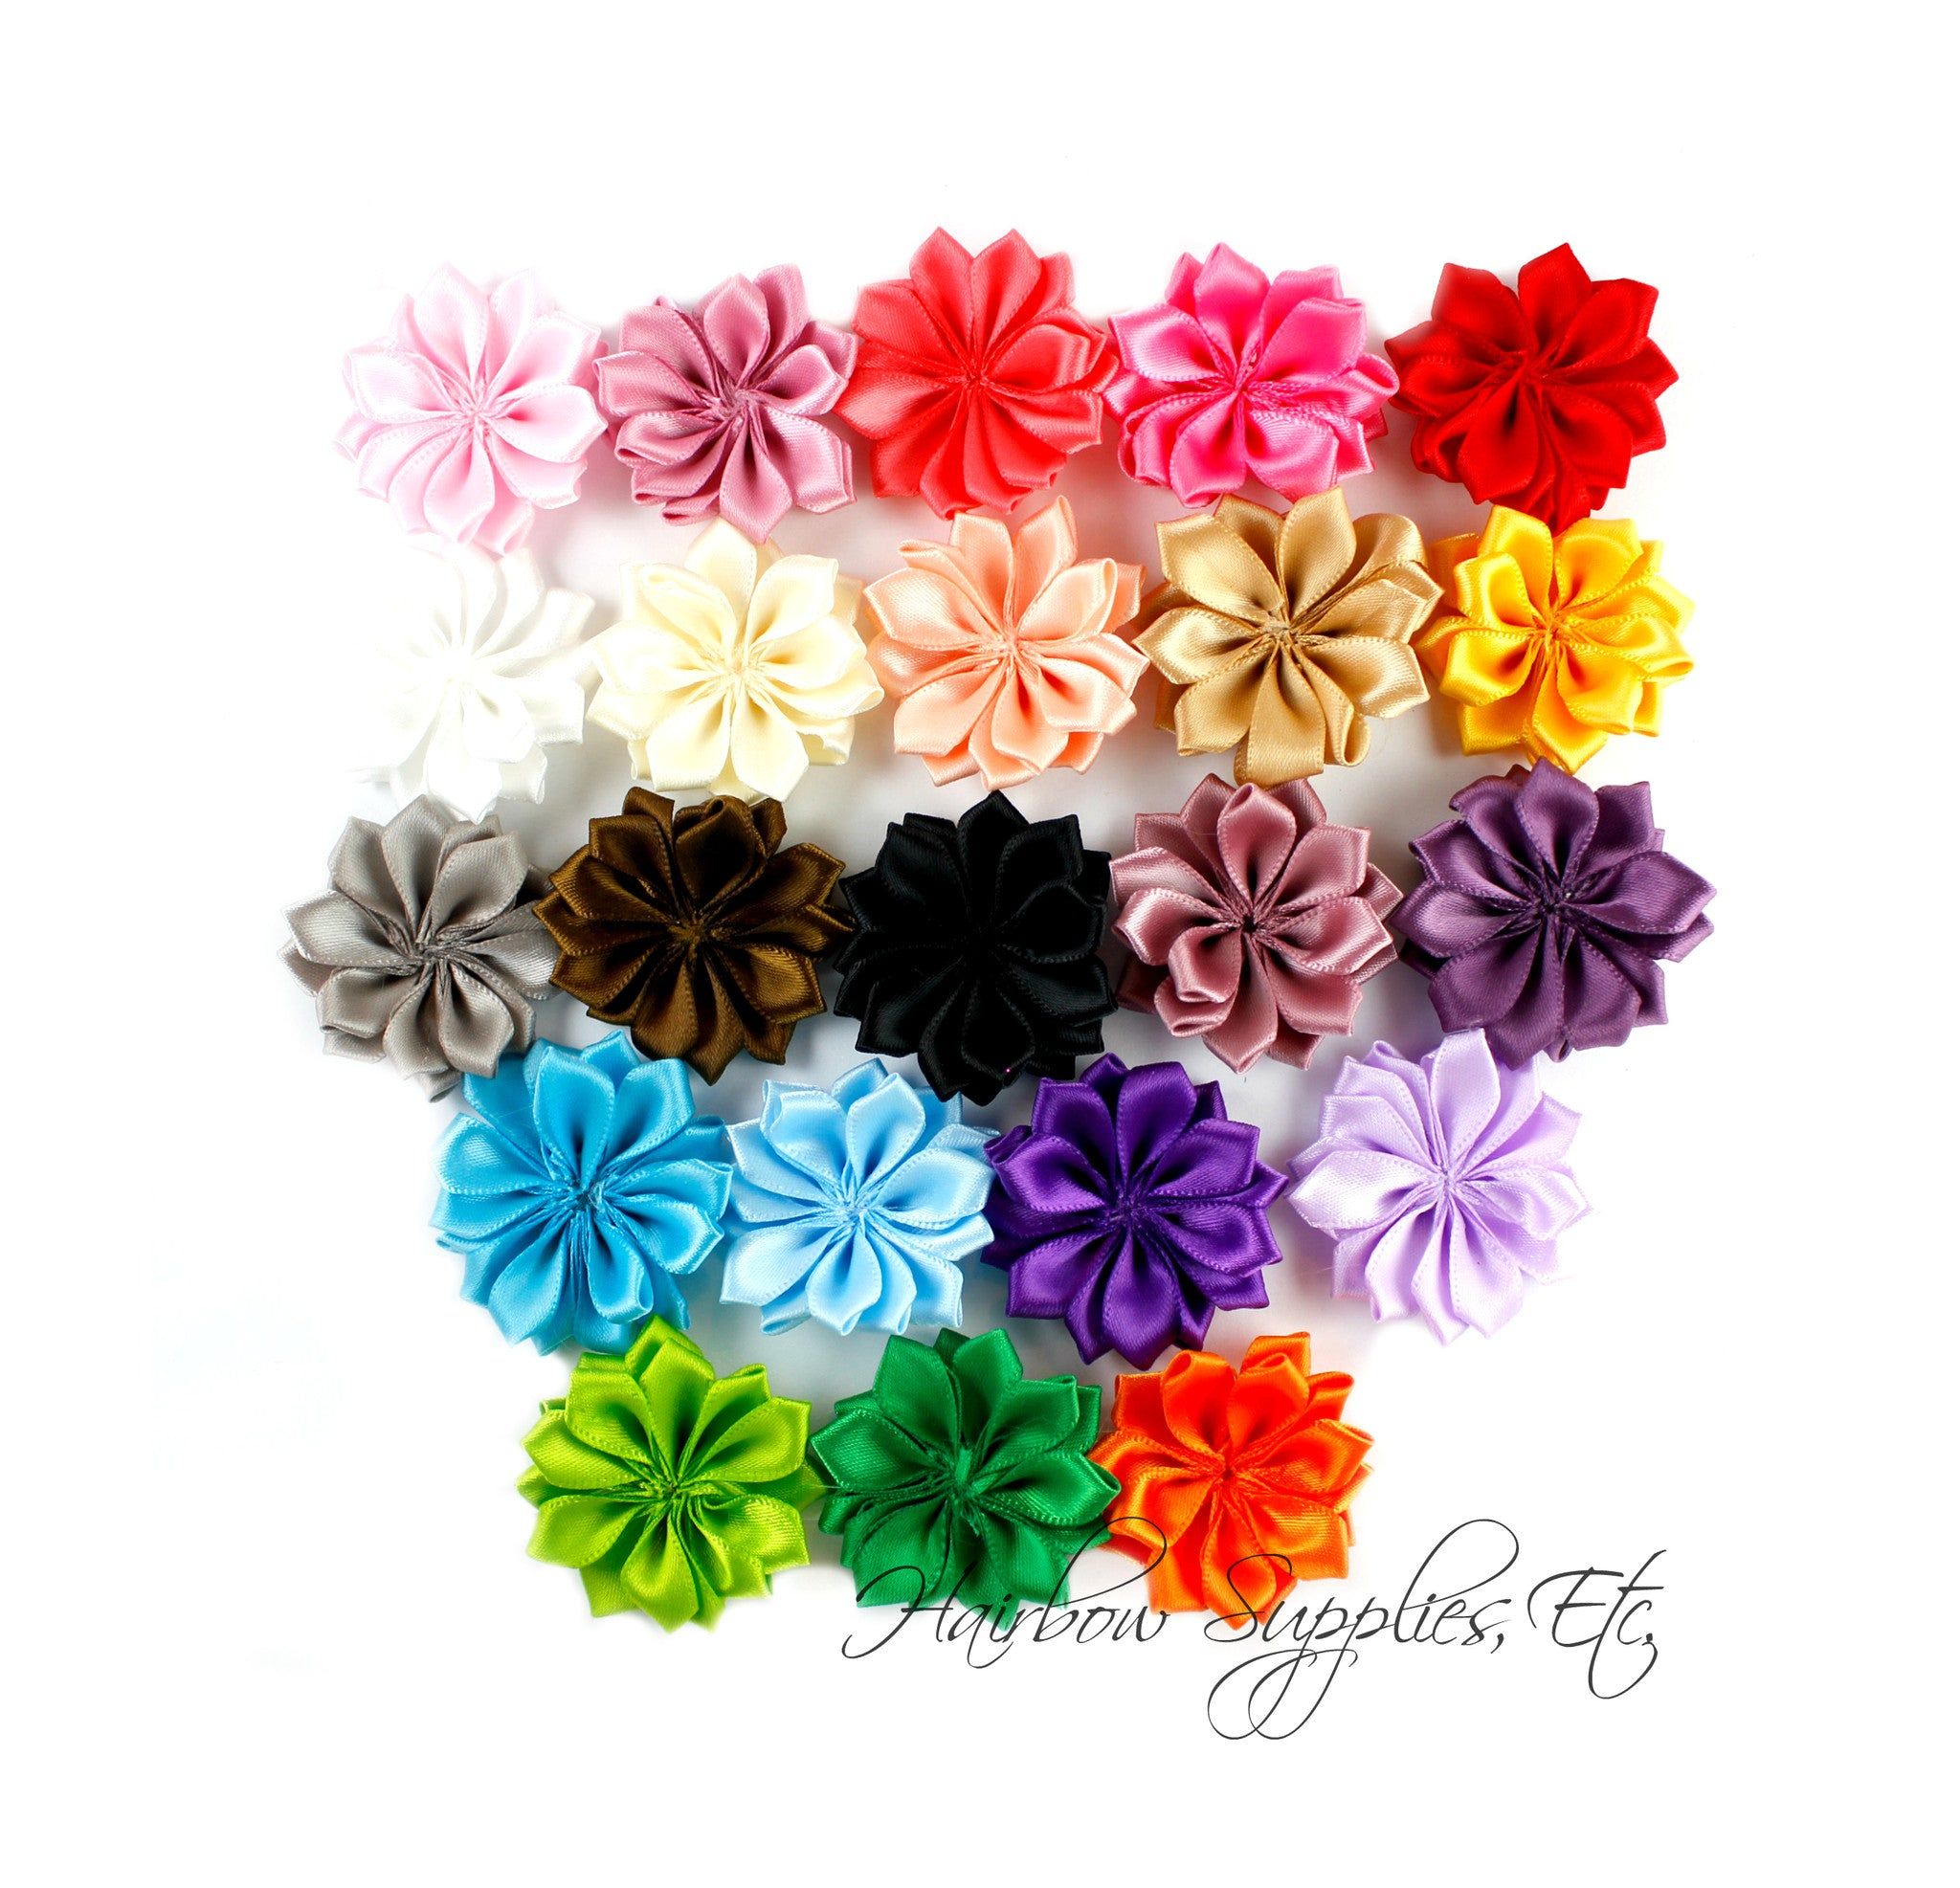 Dainty star flowers - 1-1/2 inch